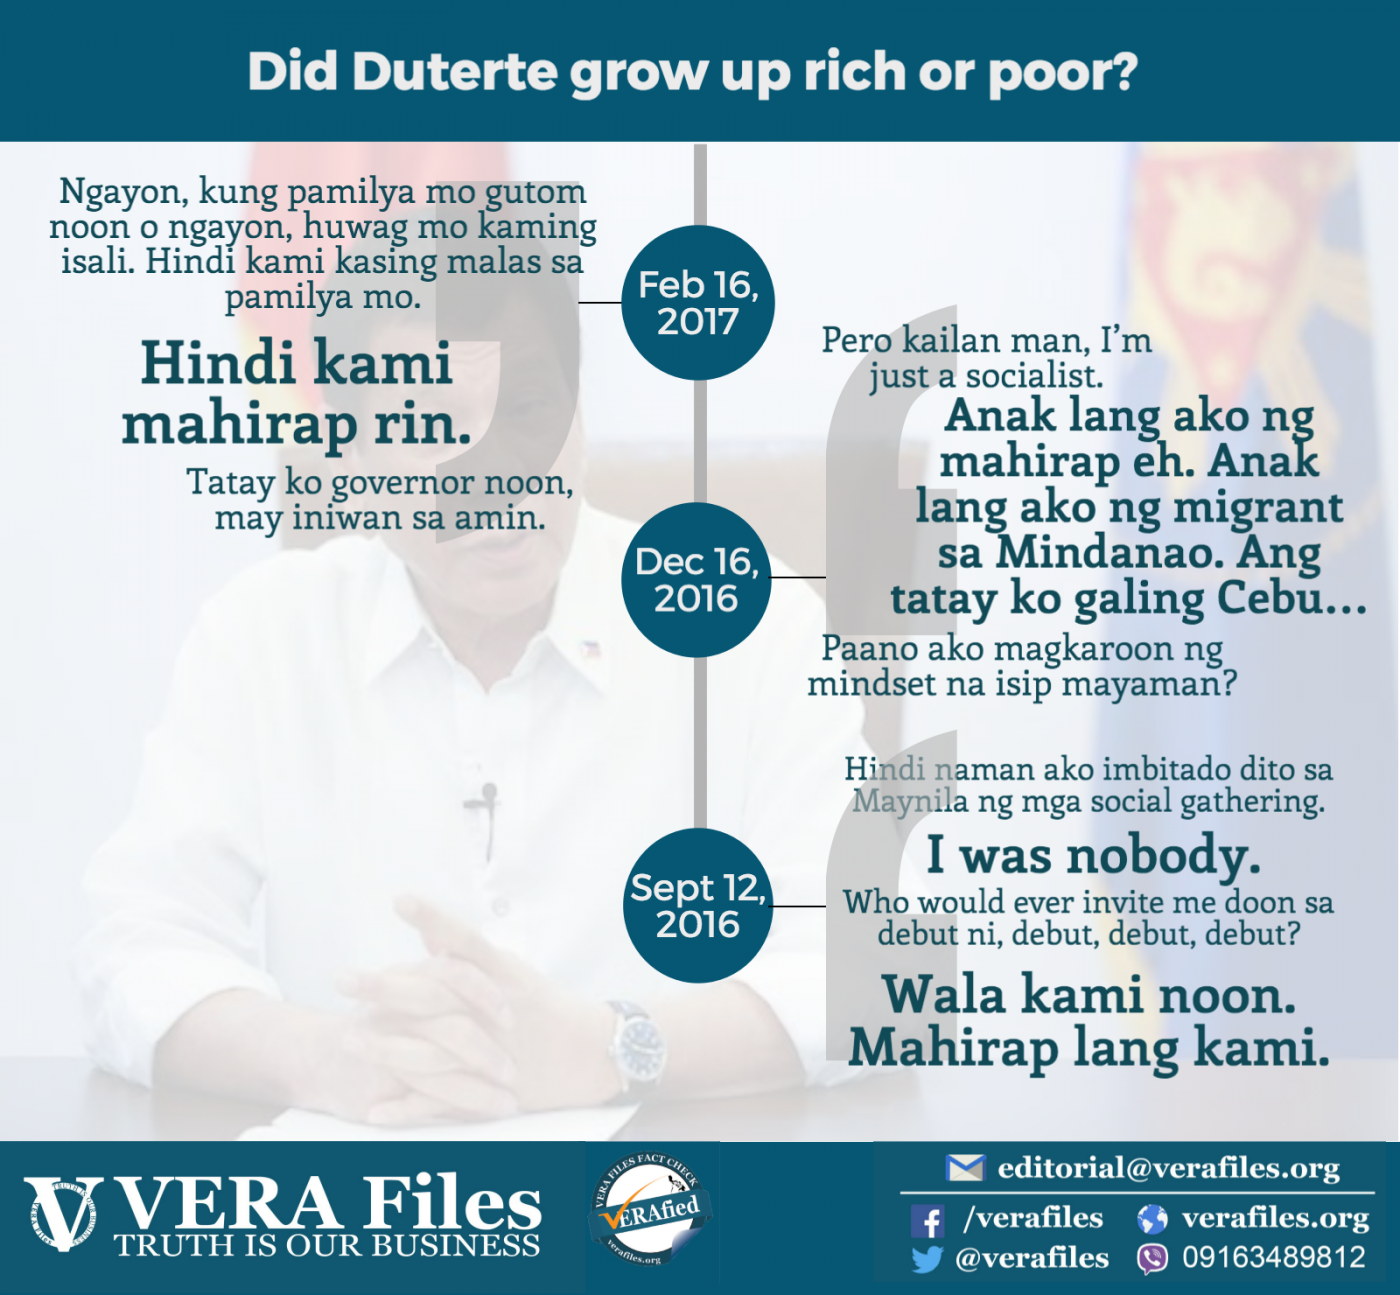 Duterte flip-flops on family's wealth